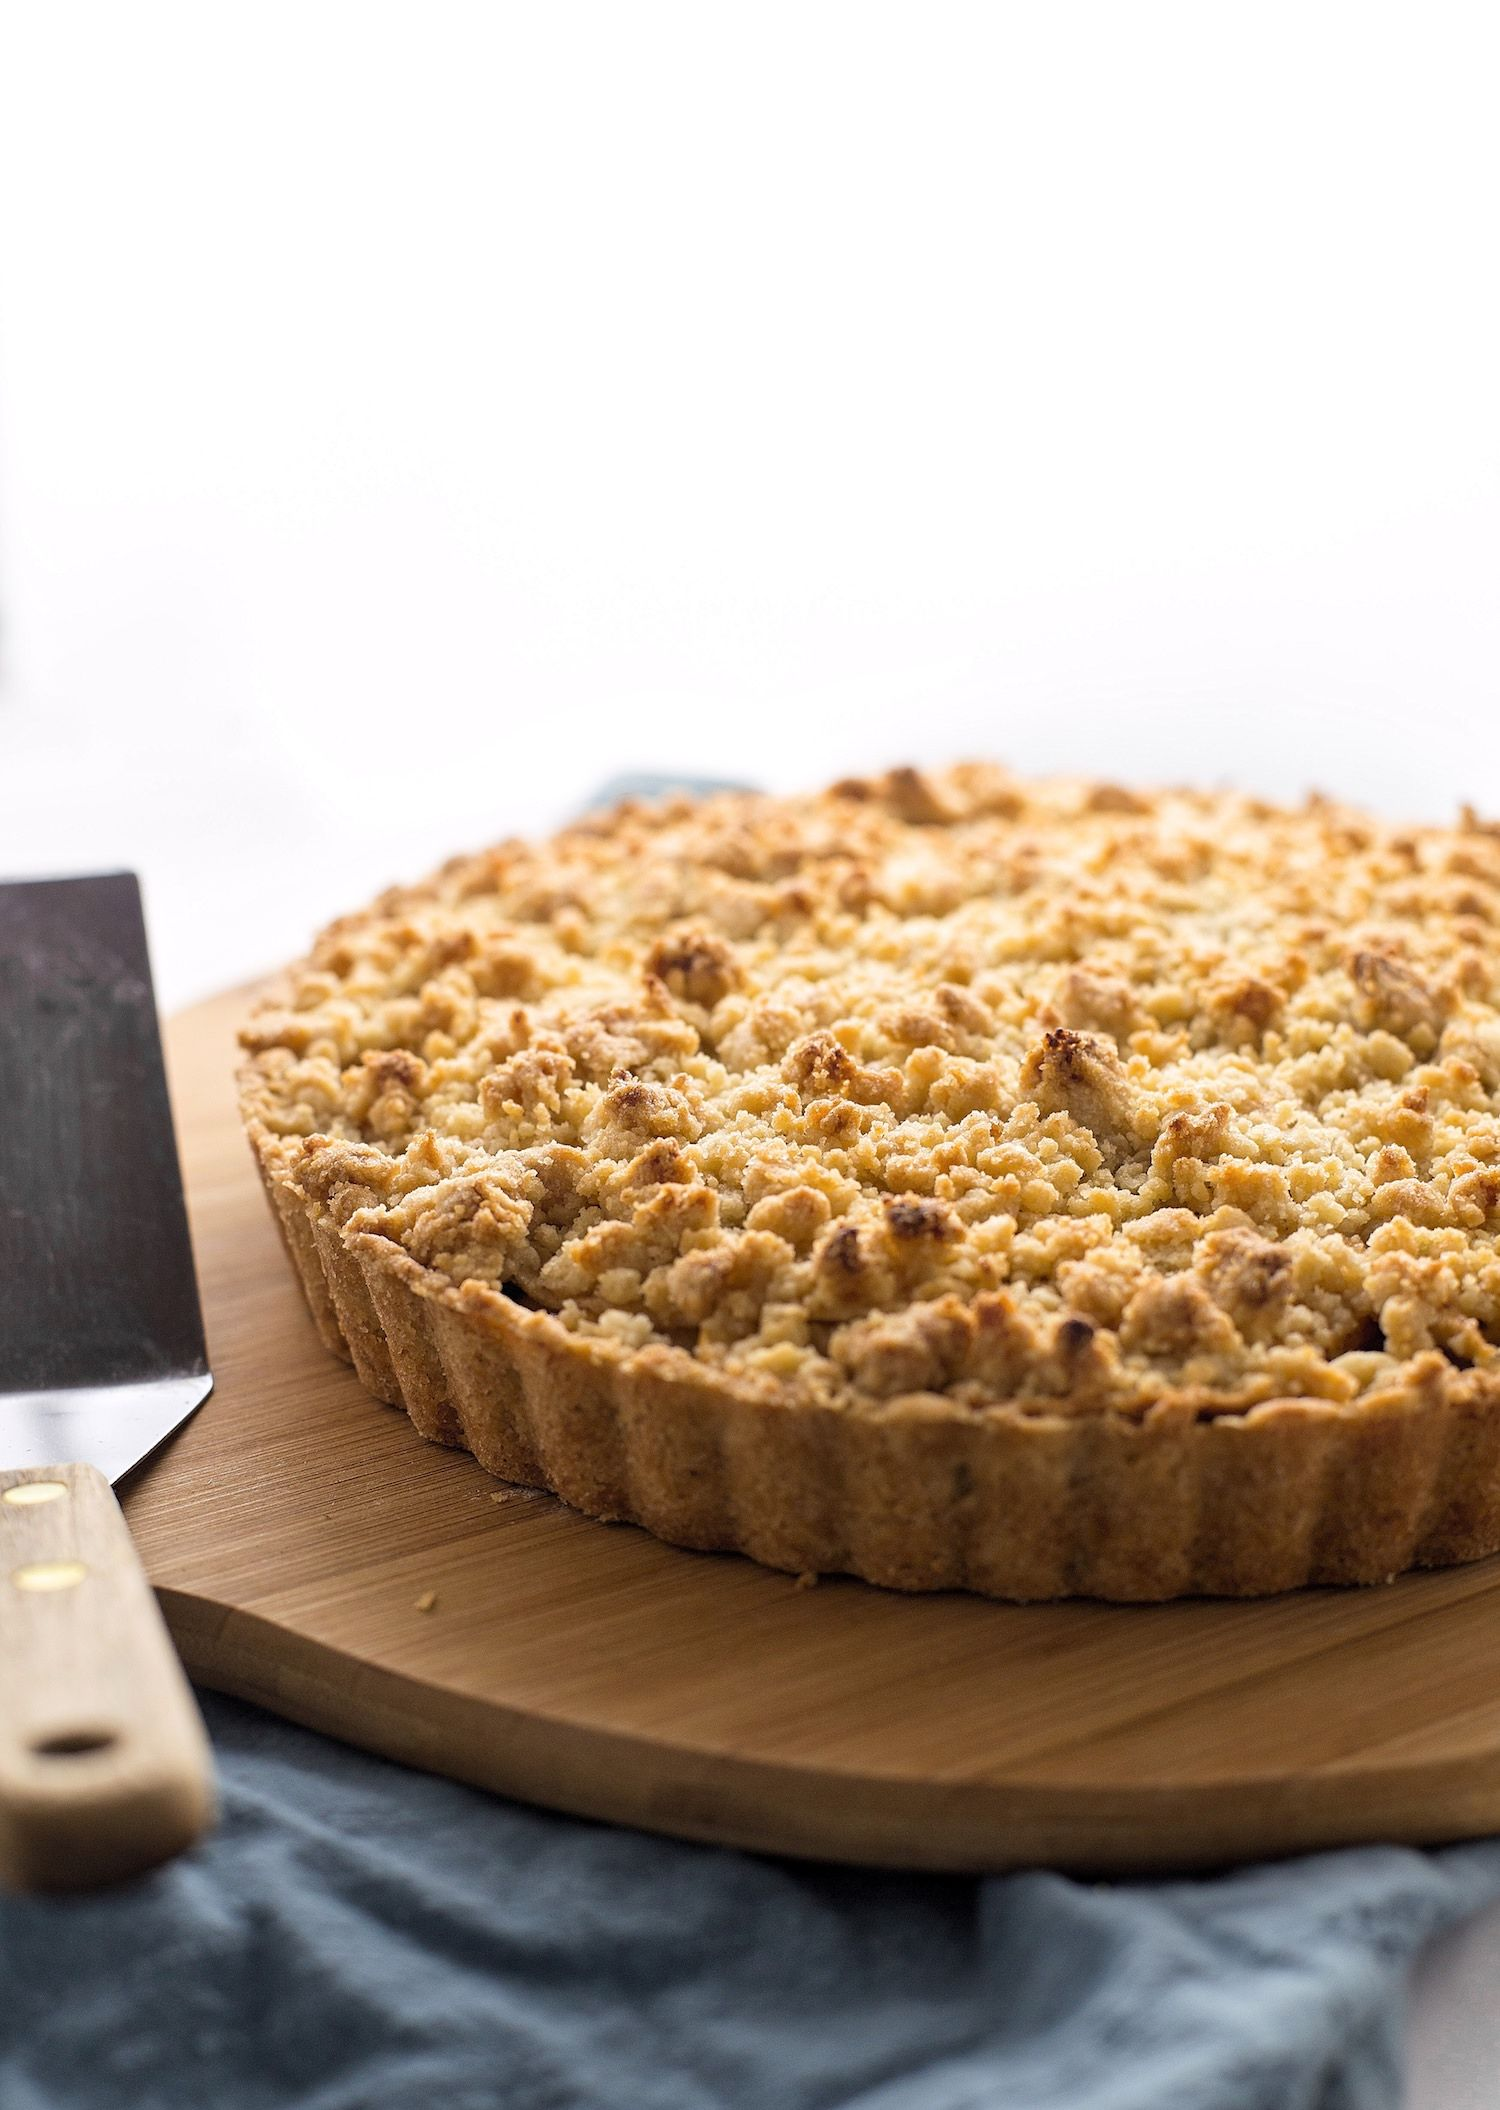 Apple Crumble Tart | Truffles and Trends